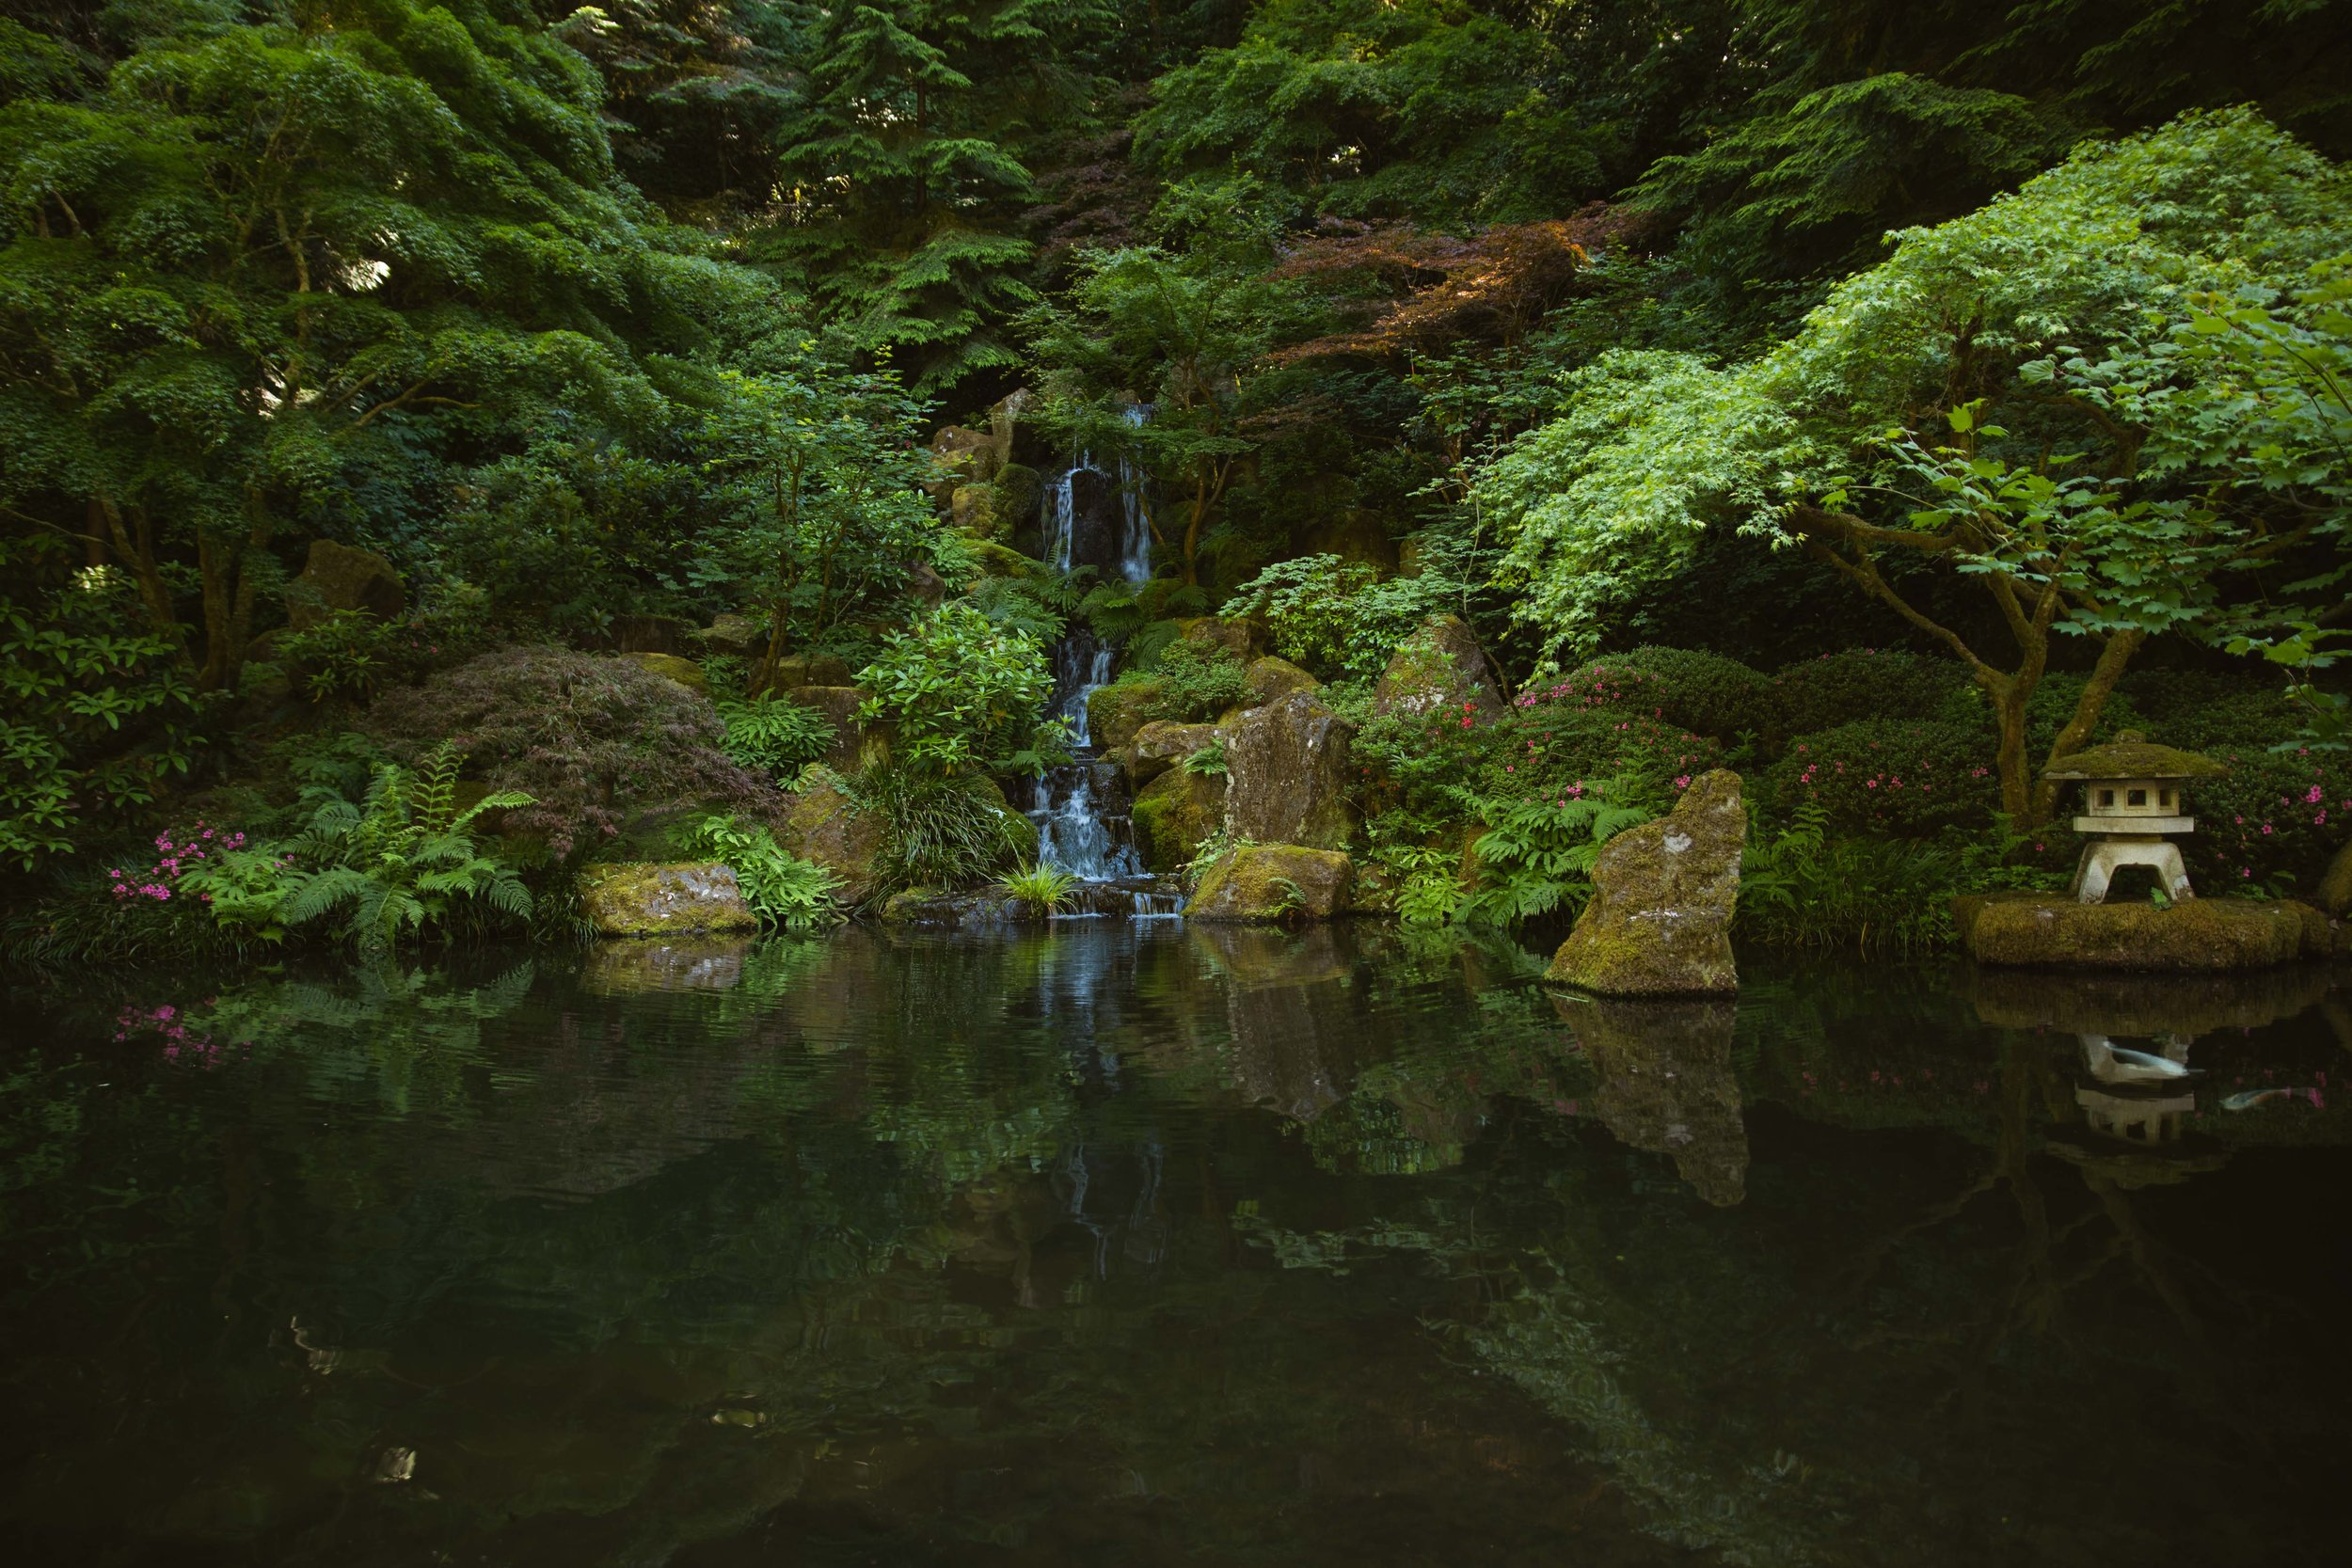 Portland Japanese Garden's Natural Garden has multiple ponds, waterfalls, and streams